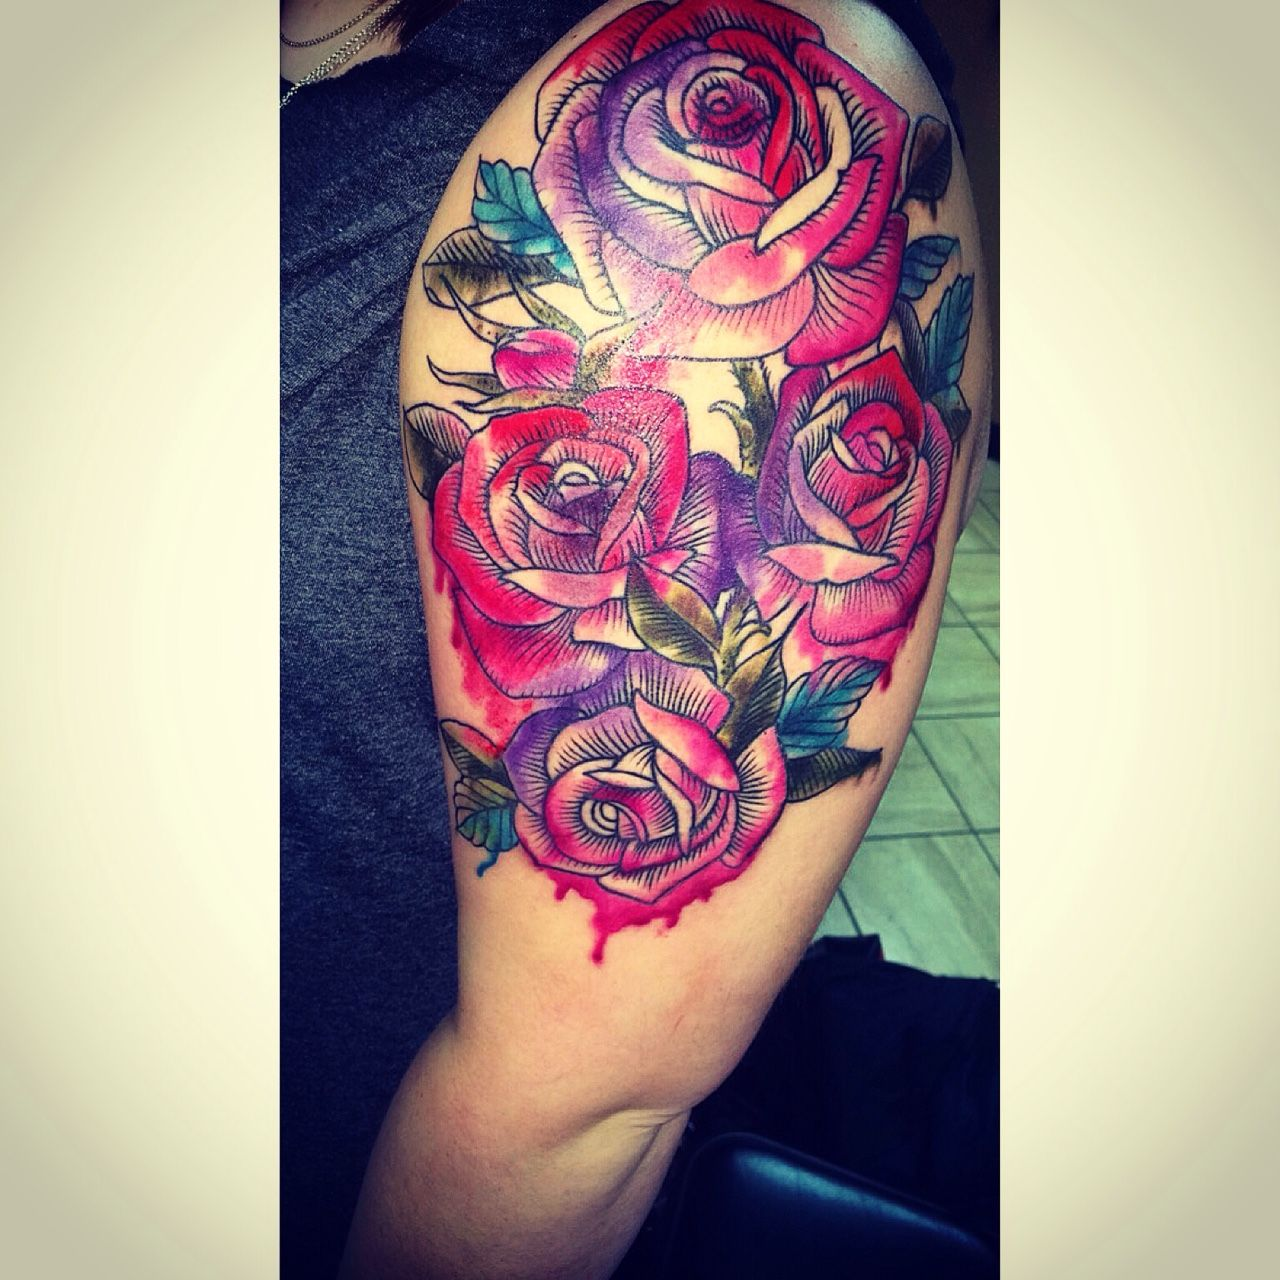 Rose Tattoos With Words Google Search: Watercolour Tattoos Rose - Google Search